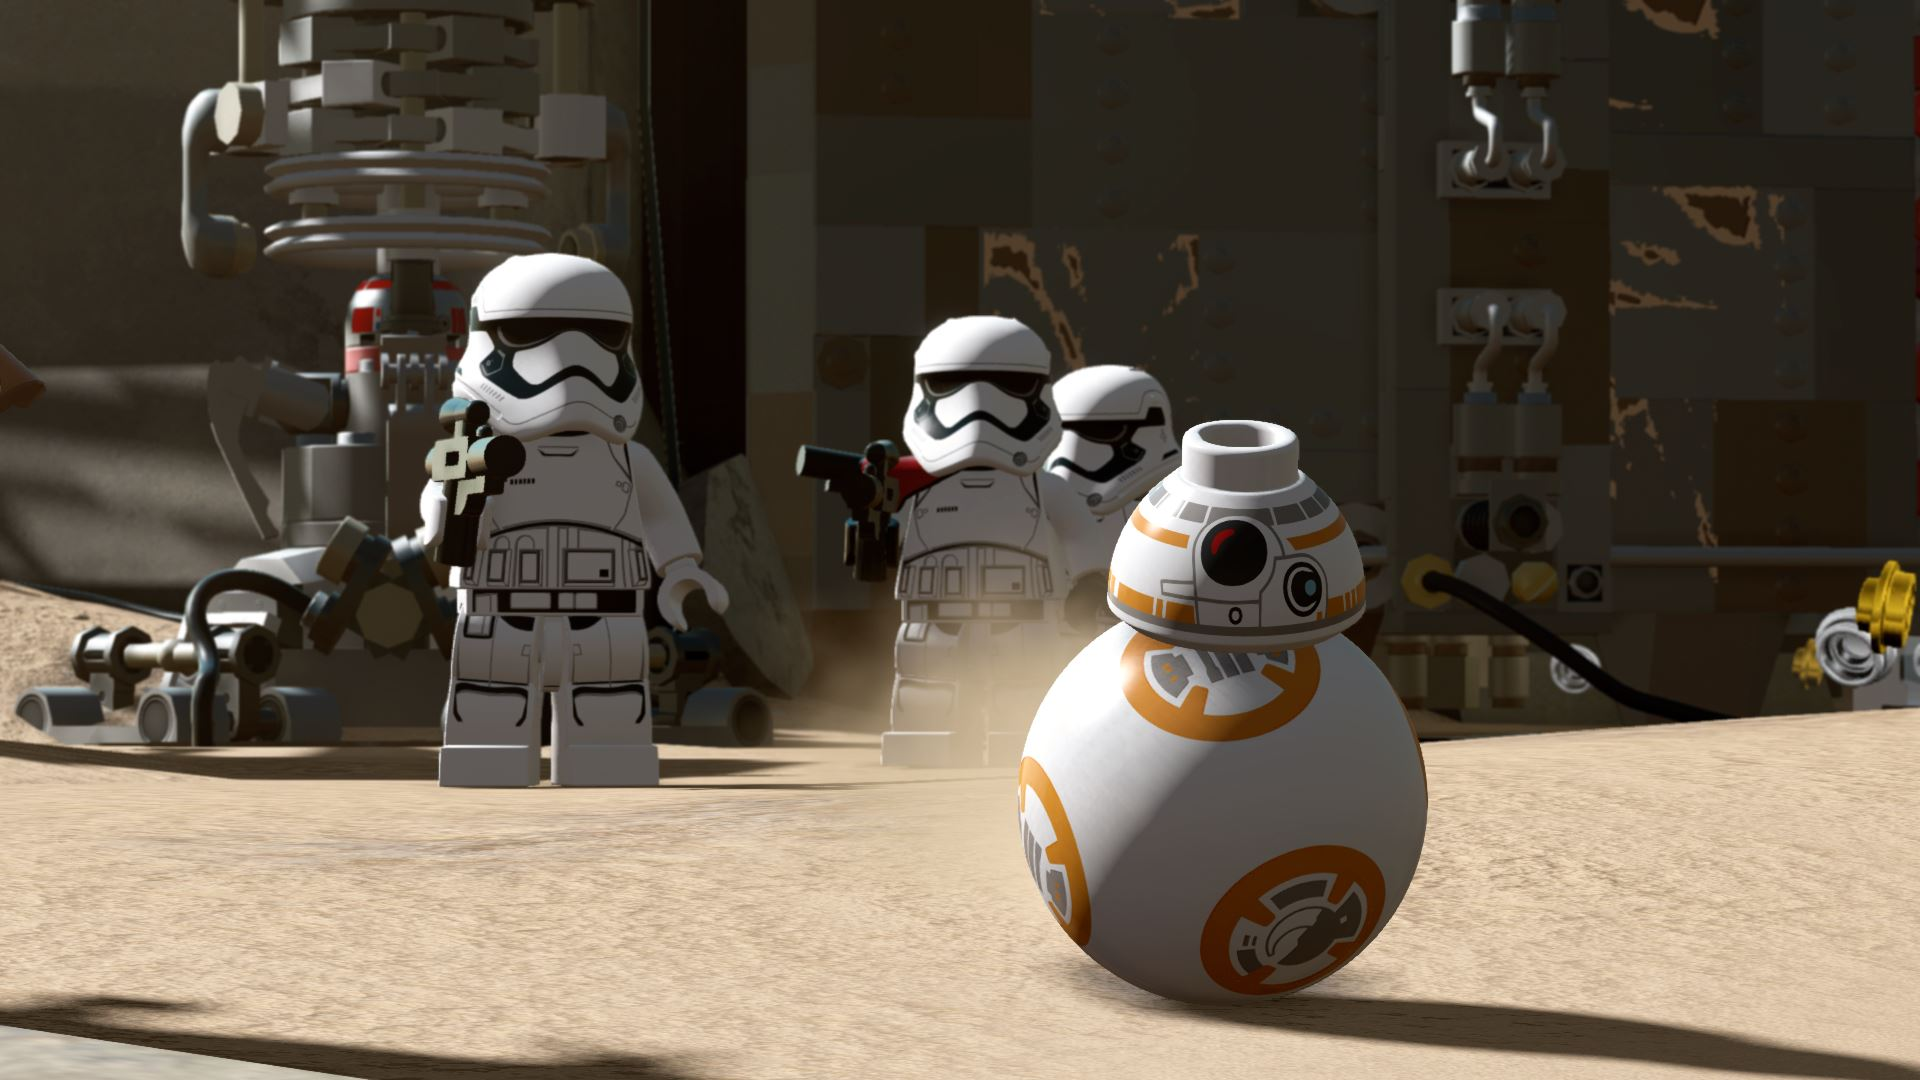 LEGO Star Wars: The Force Awakens Has New Story Elements, Exclusive PS4 Content